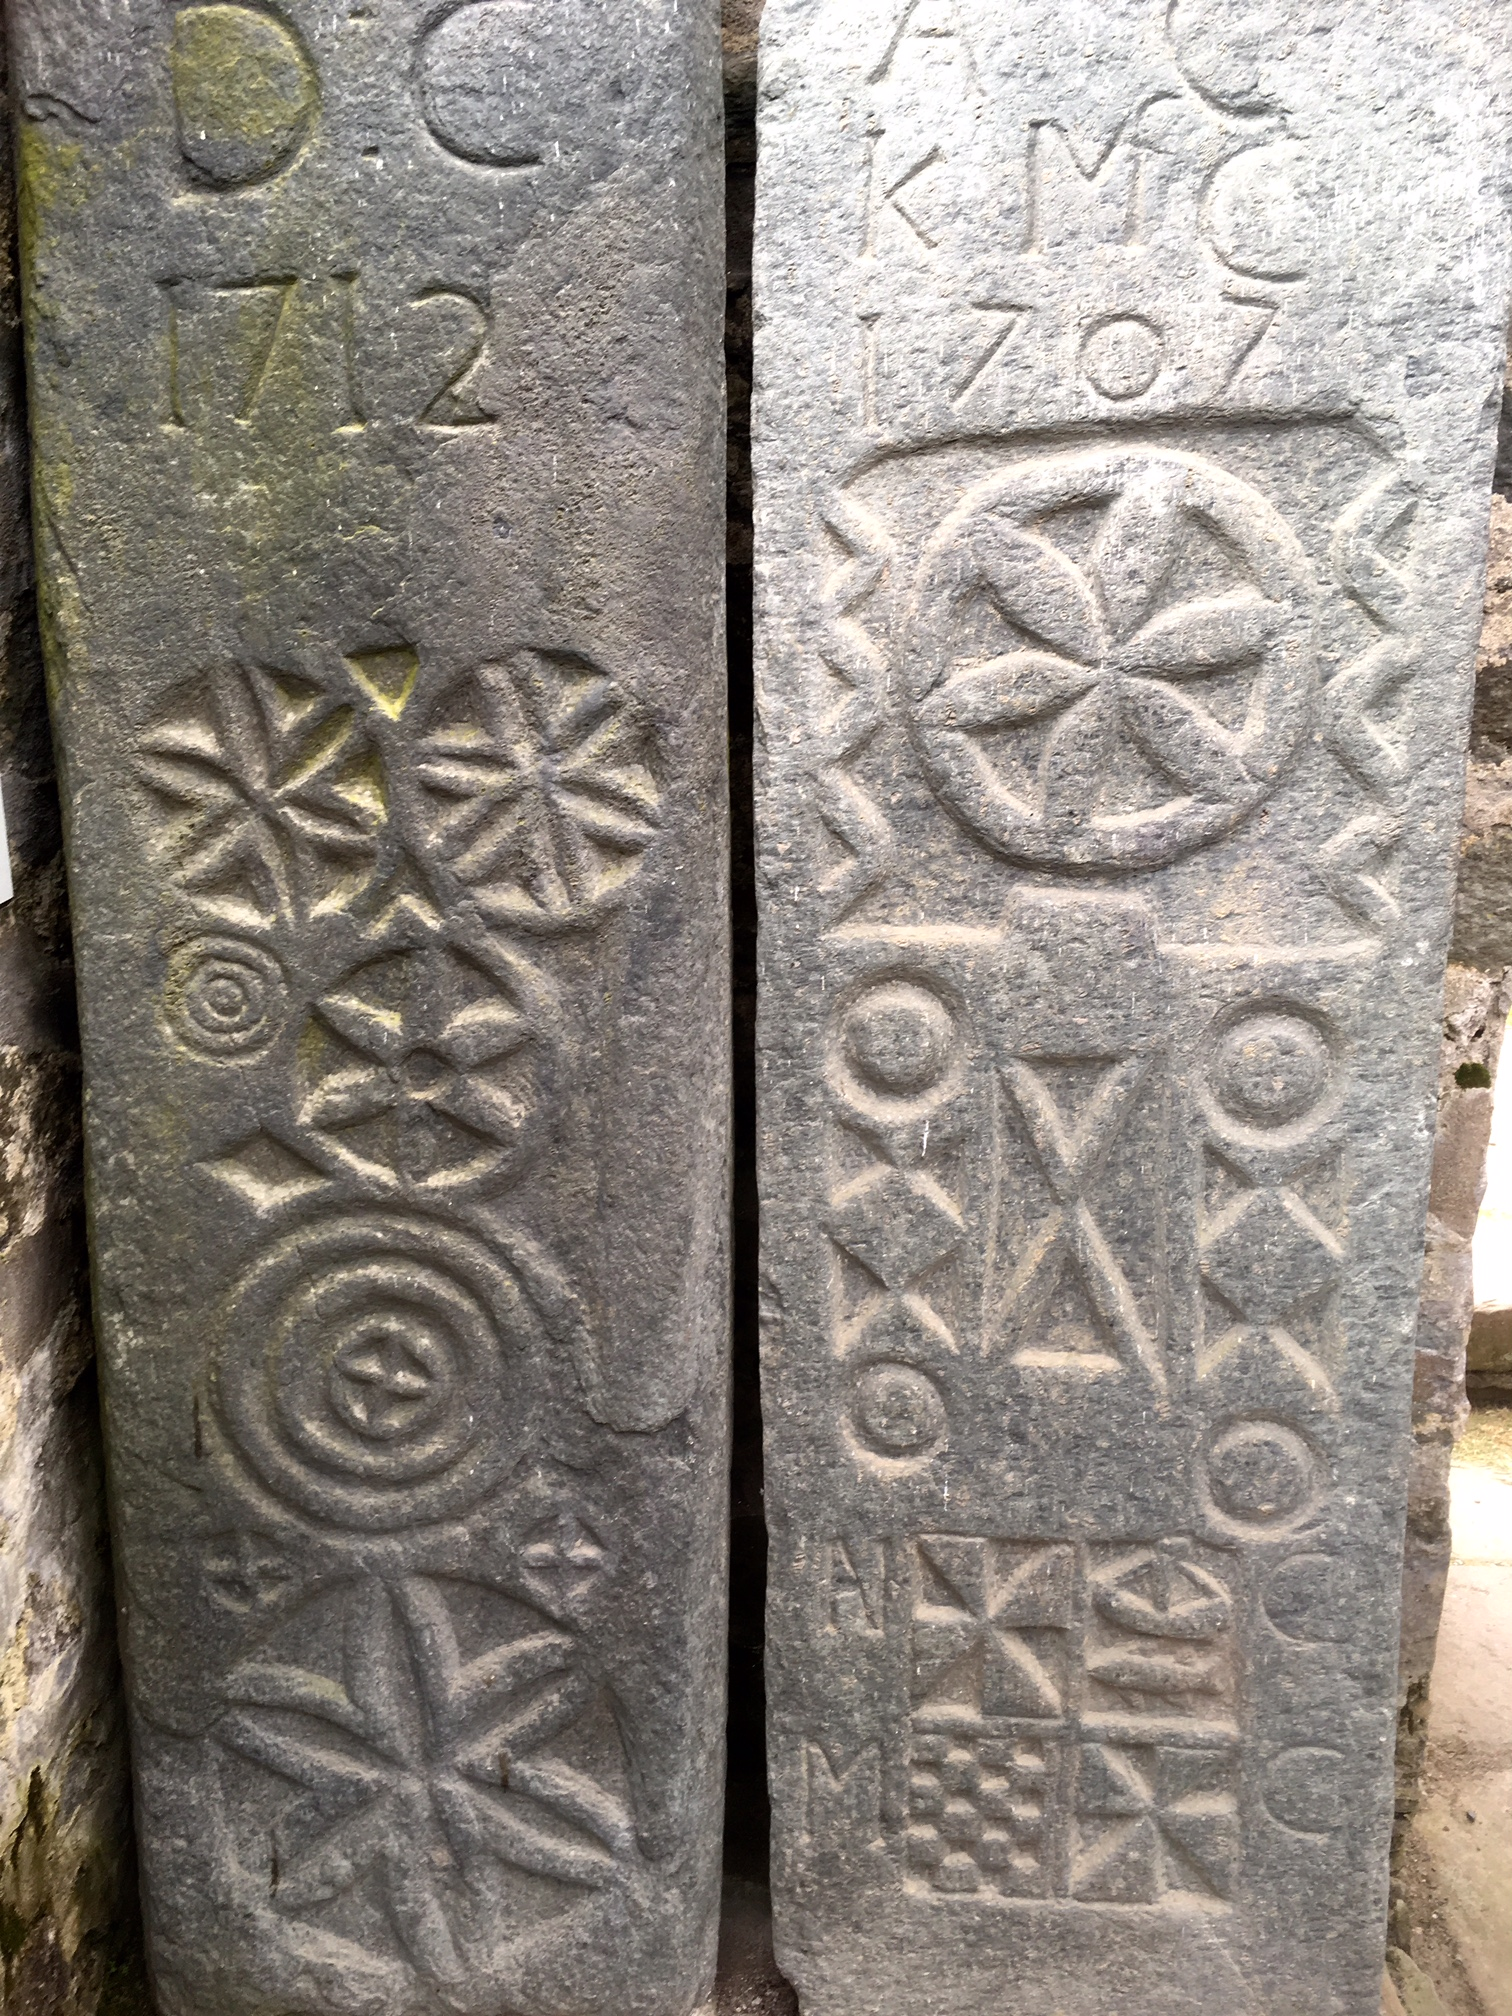 They could be 70's 'flower power' but they were carved in the 1700s